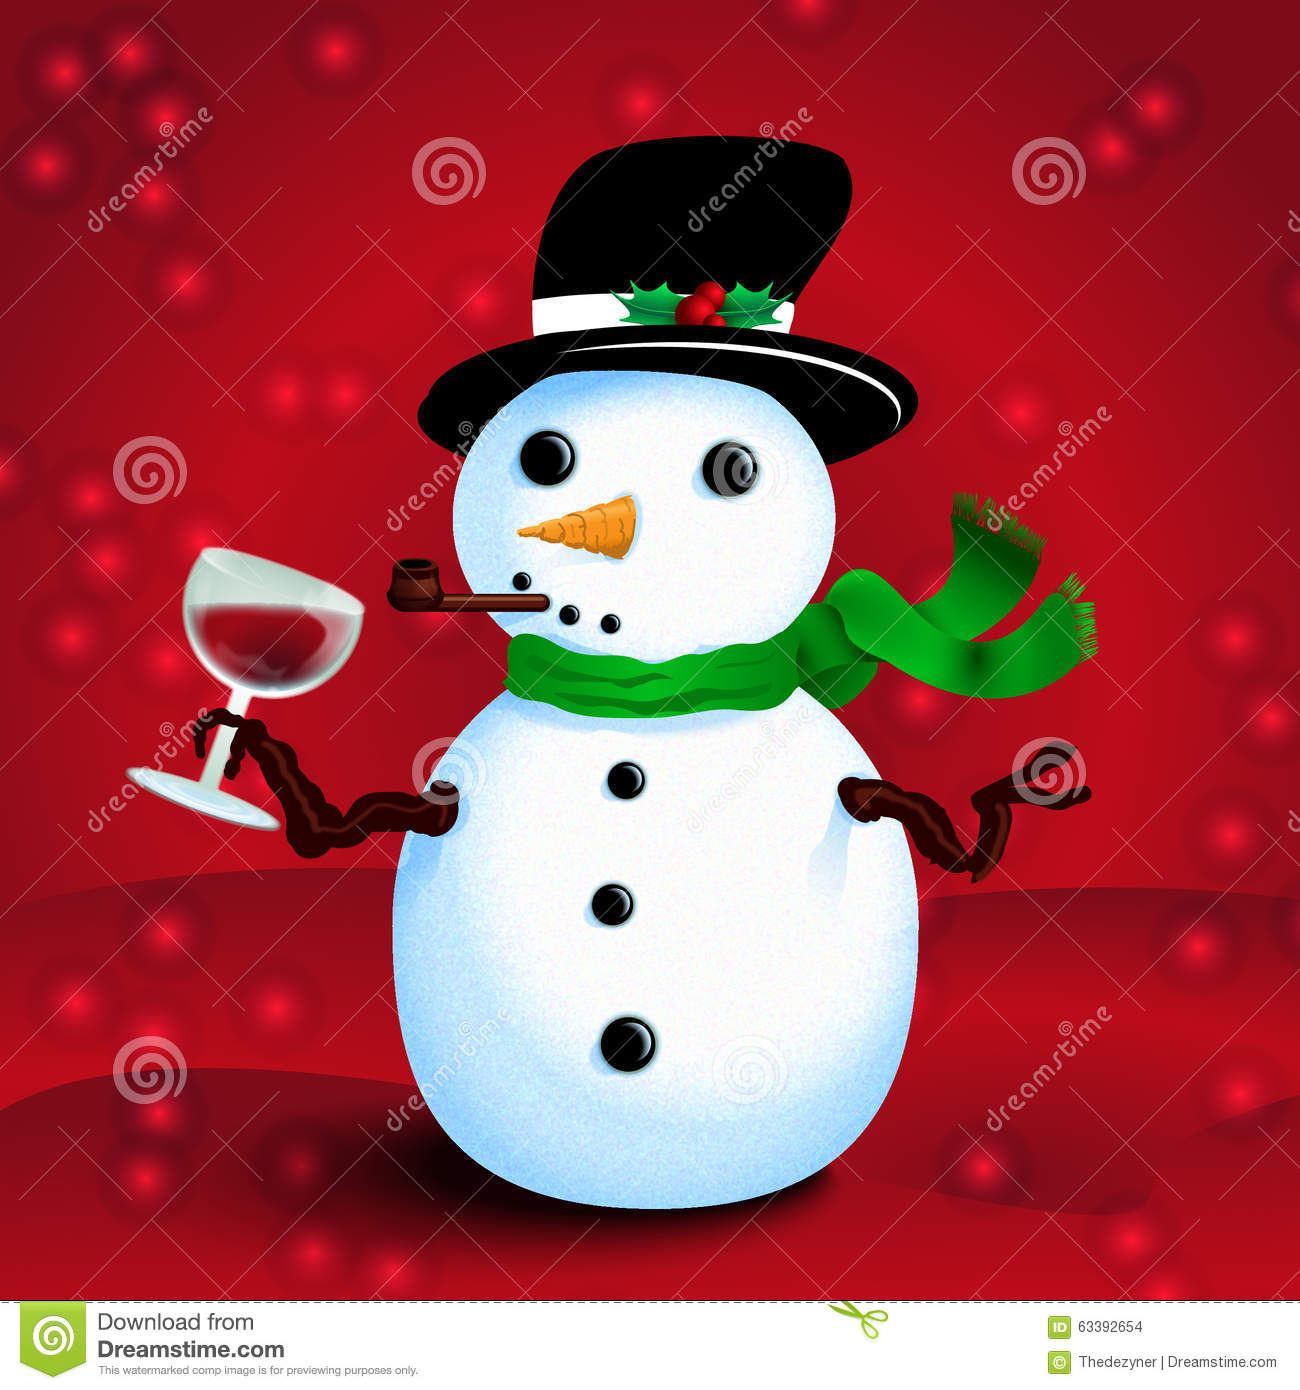 drunken snowman stock vector